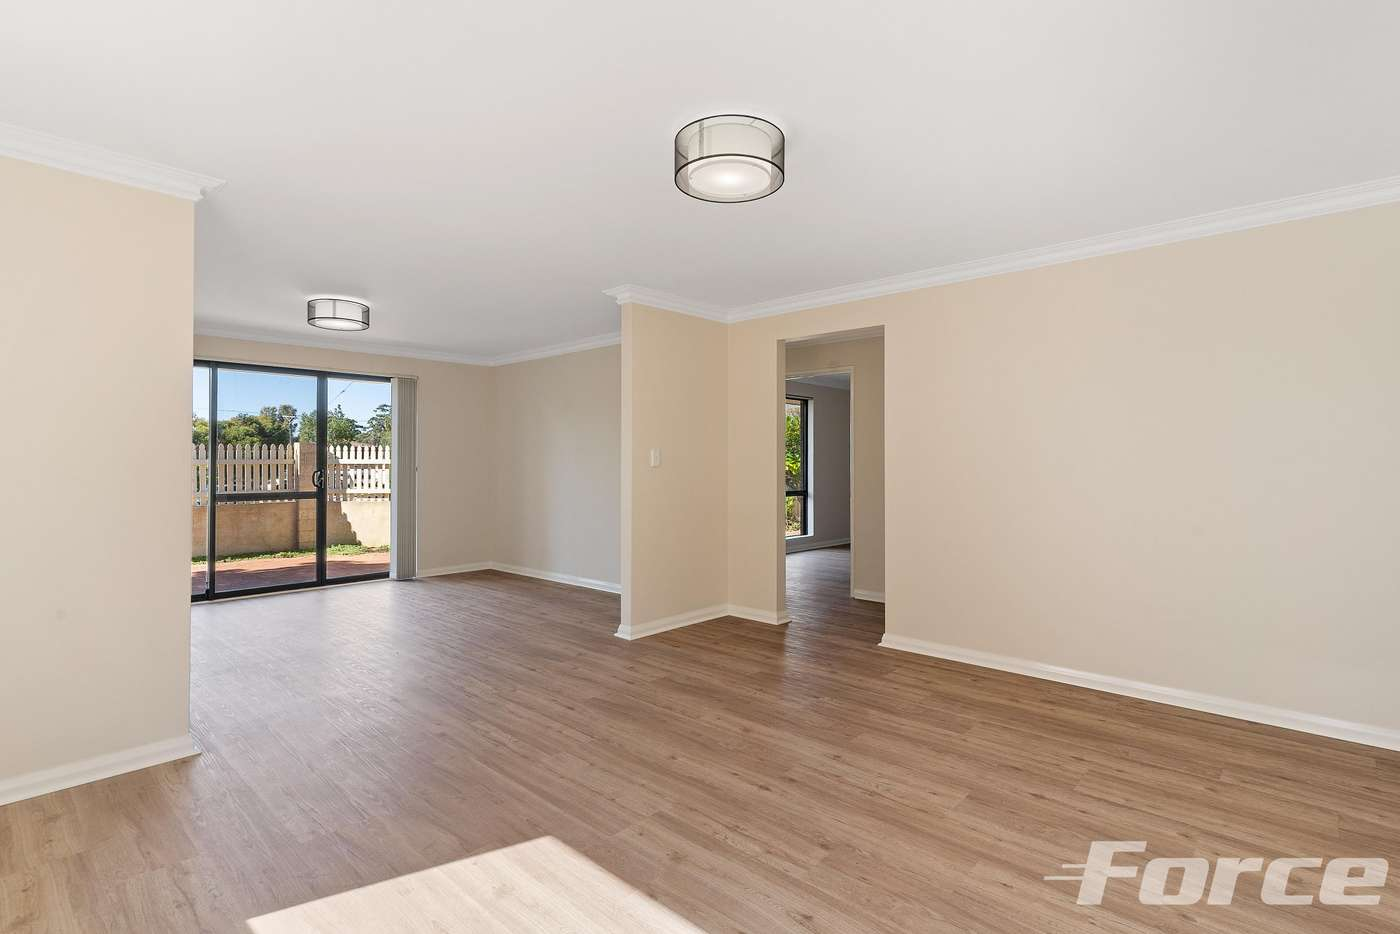 Main view of Homely house listing, 6/37 Ravenswood Drive, Nollamara WA 6061